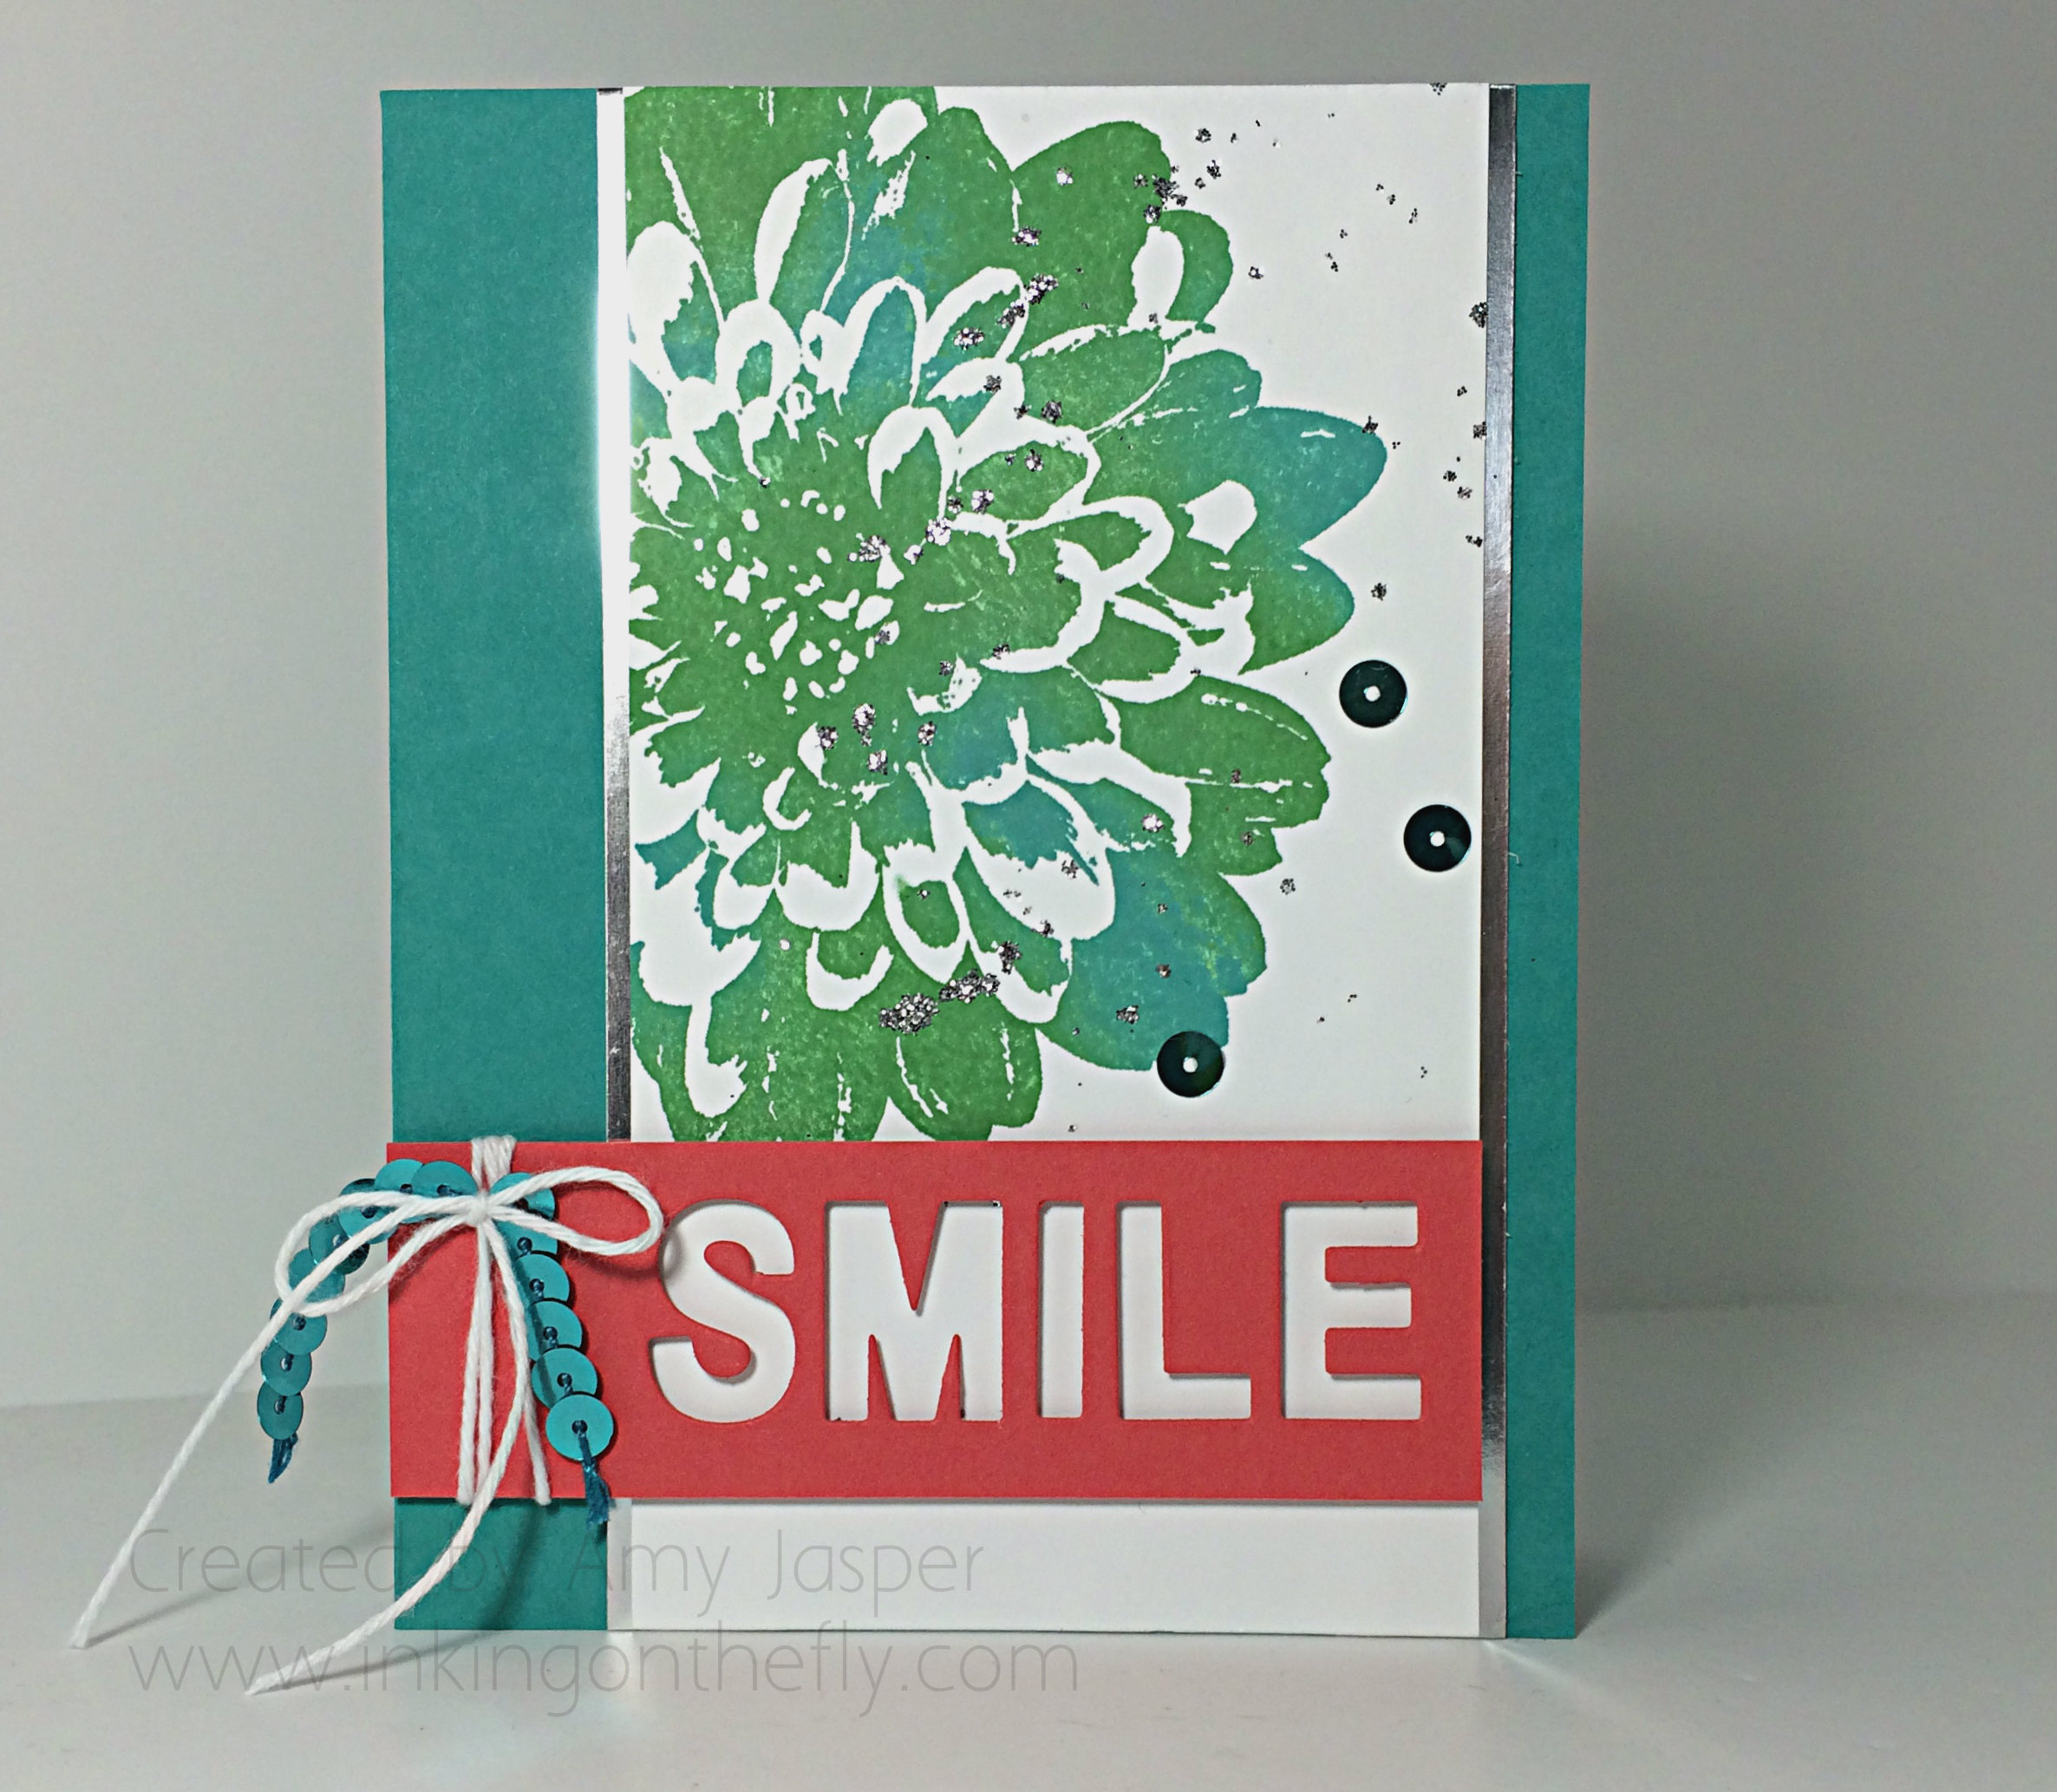 Just Smile card created by Amy Jasper